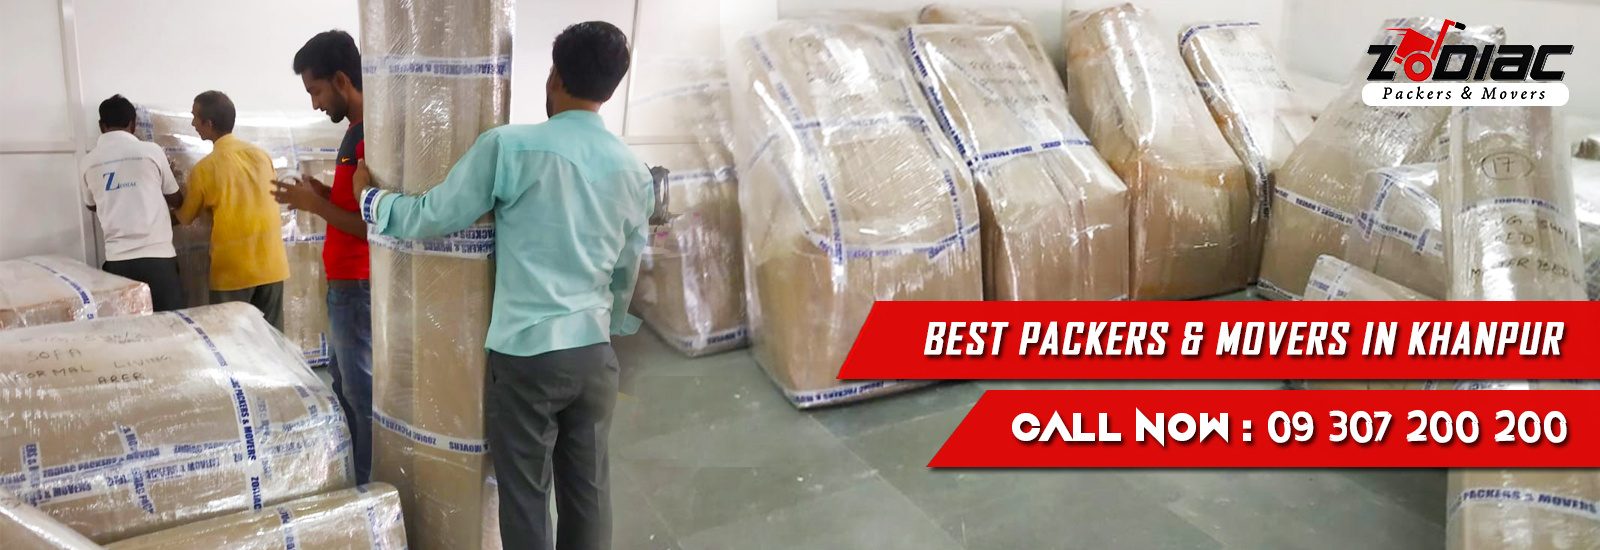 Packers and Movers in Khanpur